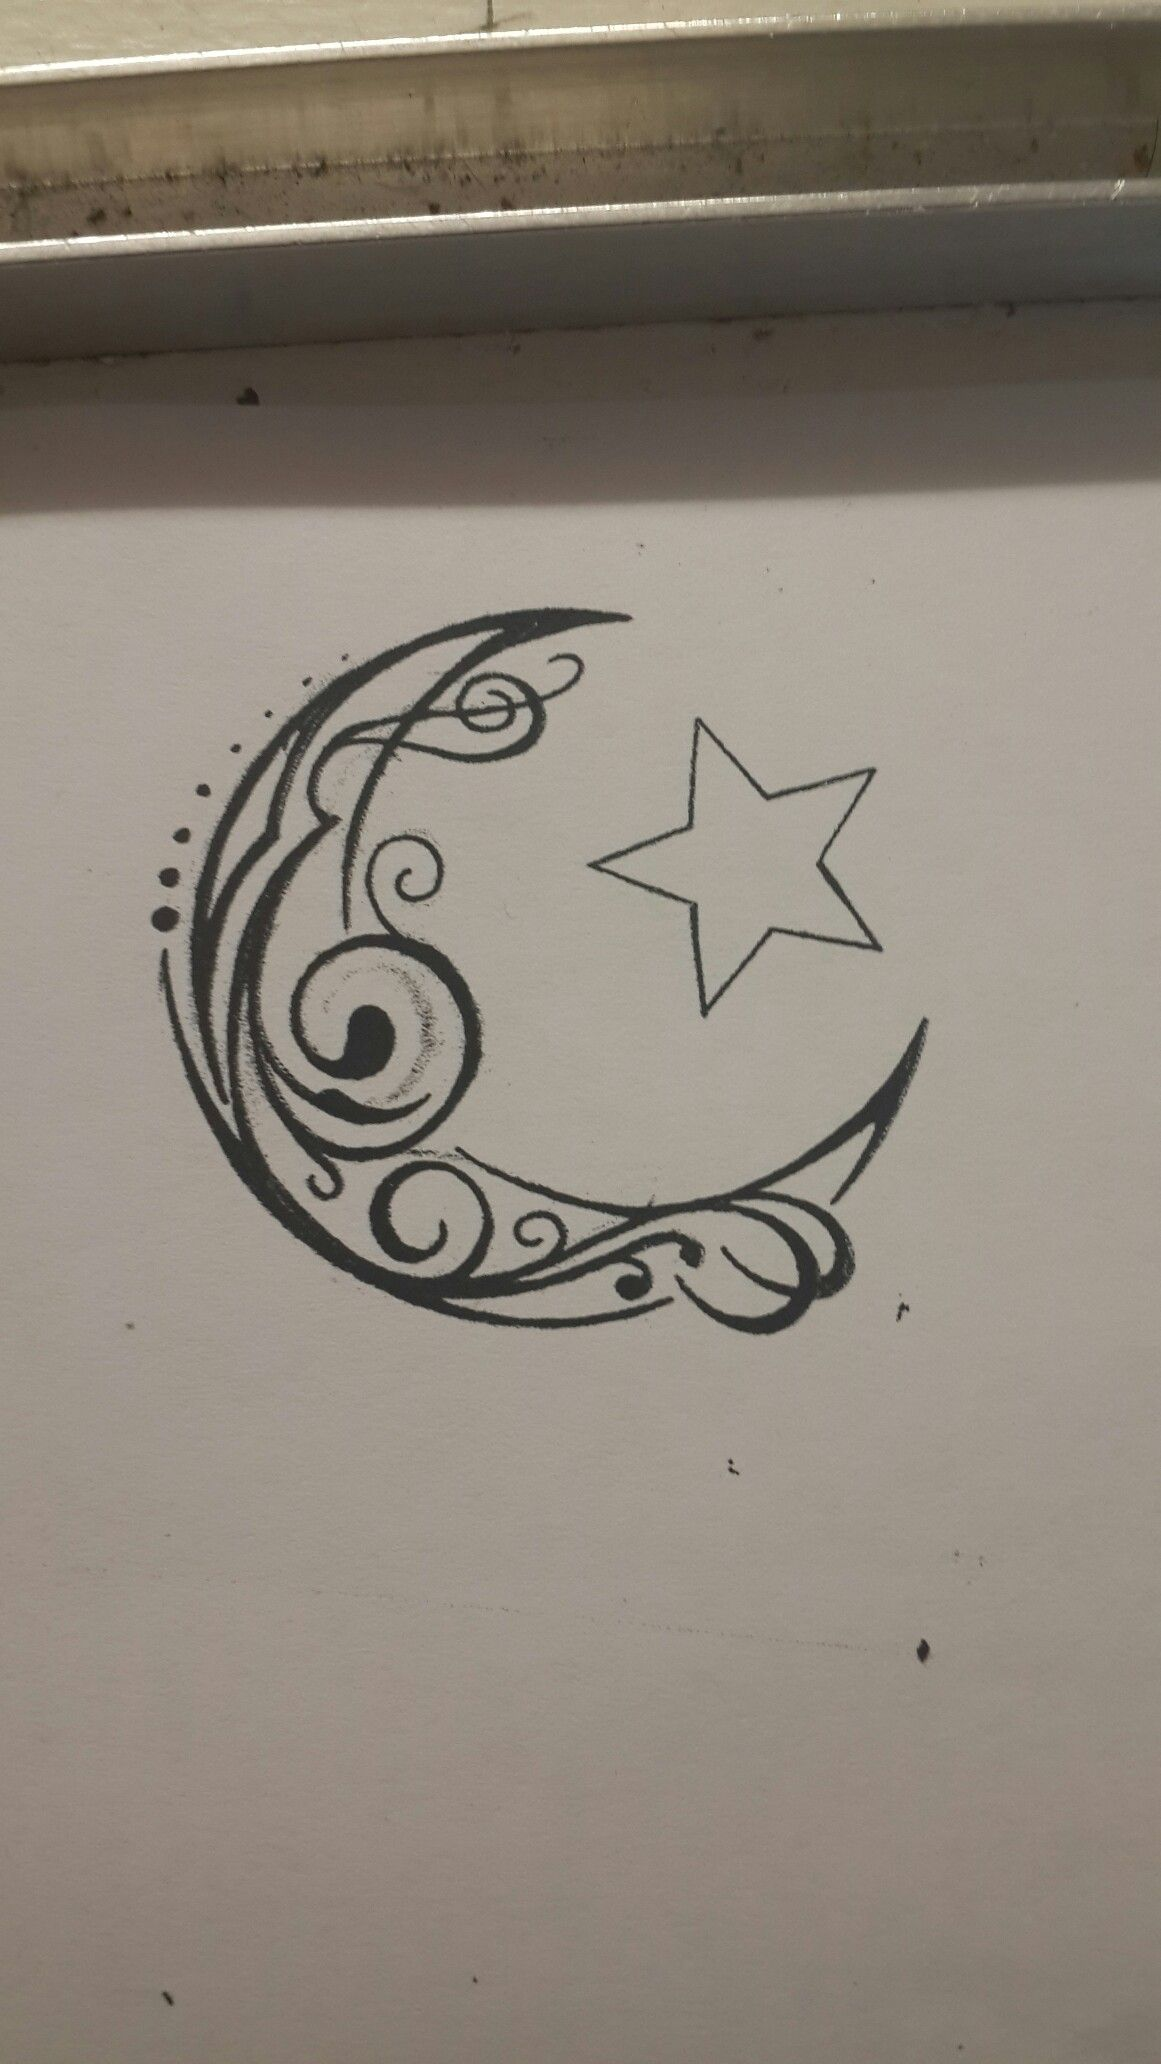 crescent moon and star tribal swirl tattoo design tattoo me please pinterest swirl tattoo. Black Bedroom Furniture Sets. Home Design Ideas